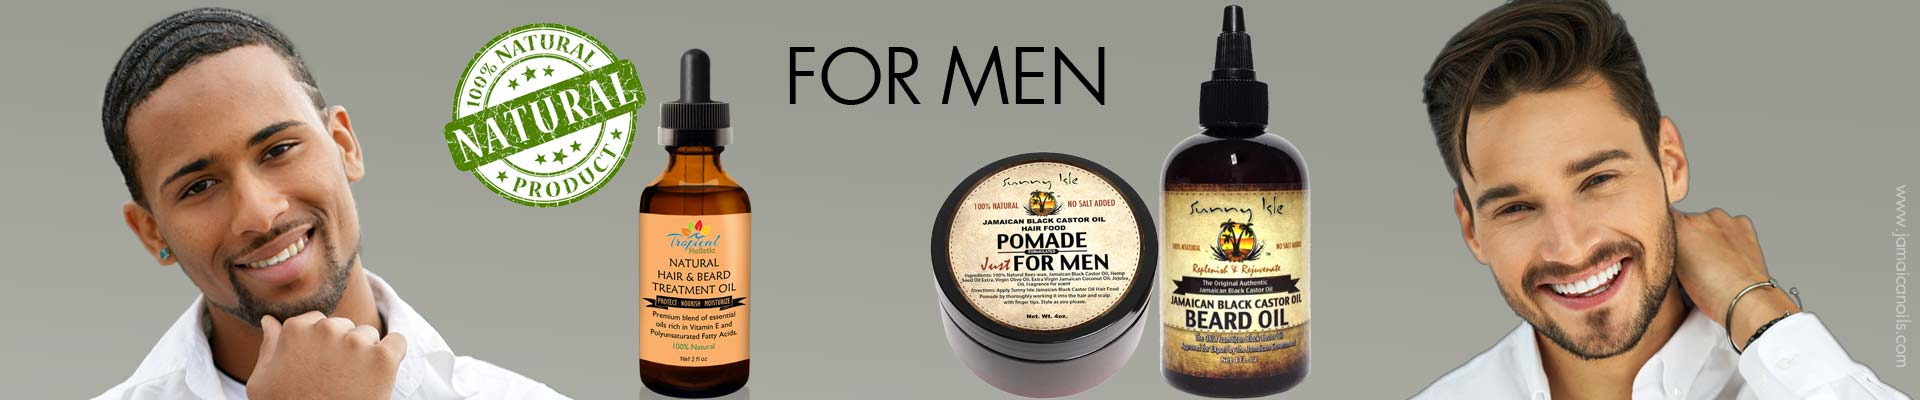 all-natural-products-for-men-at-jamaicanoils.jpg